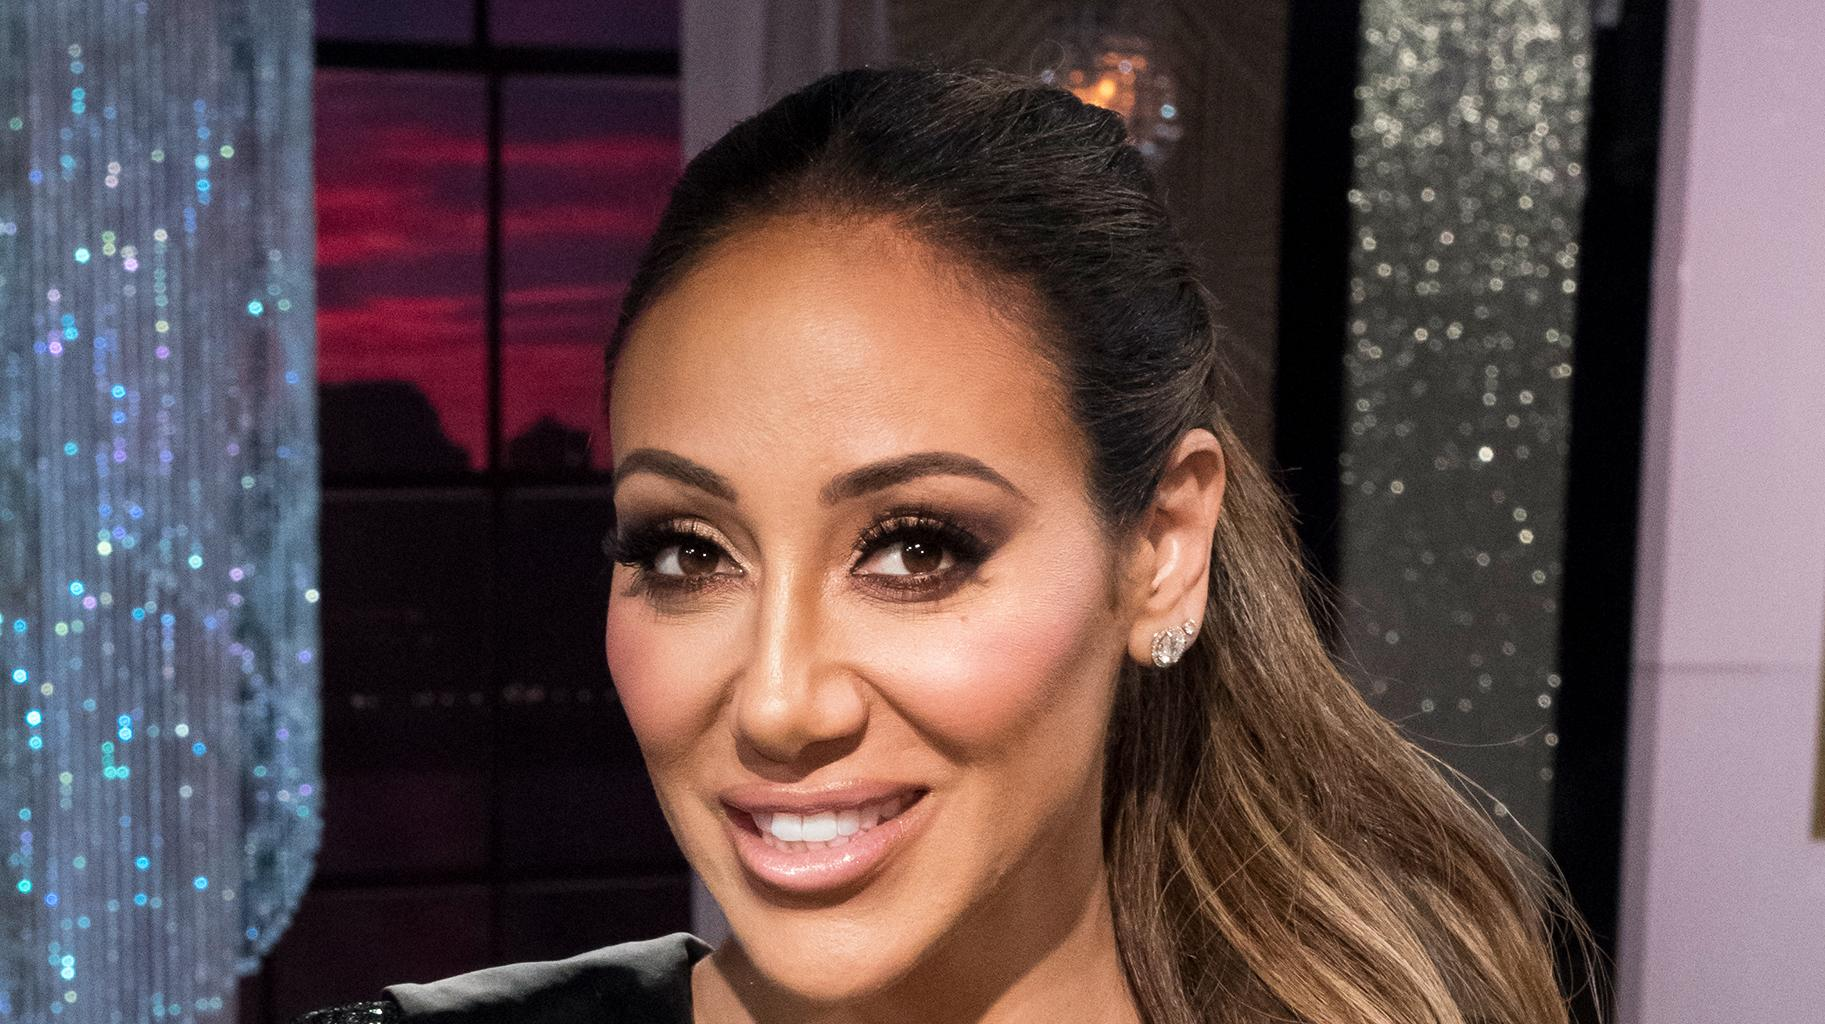 Melissa Gorga Looks Stunning In Bright Pink Dress - Check Out The Pic!